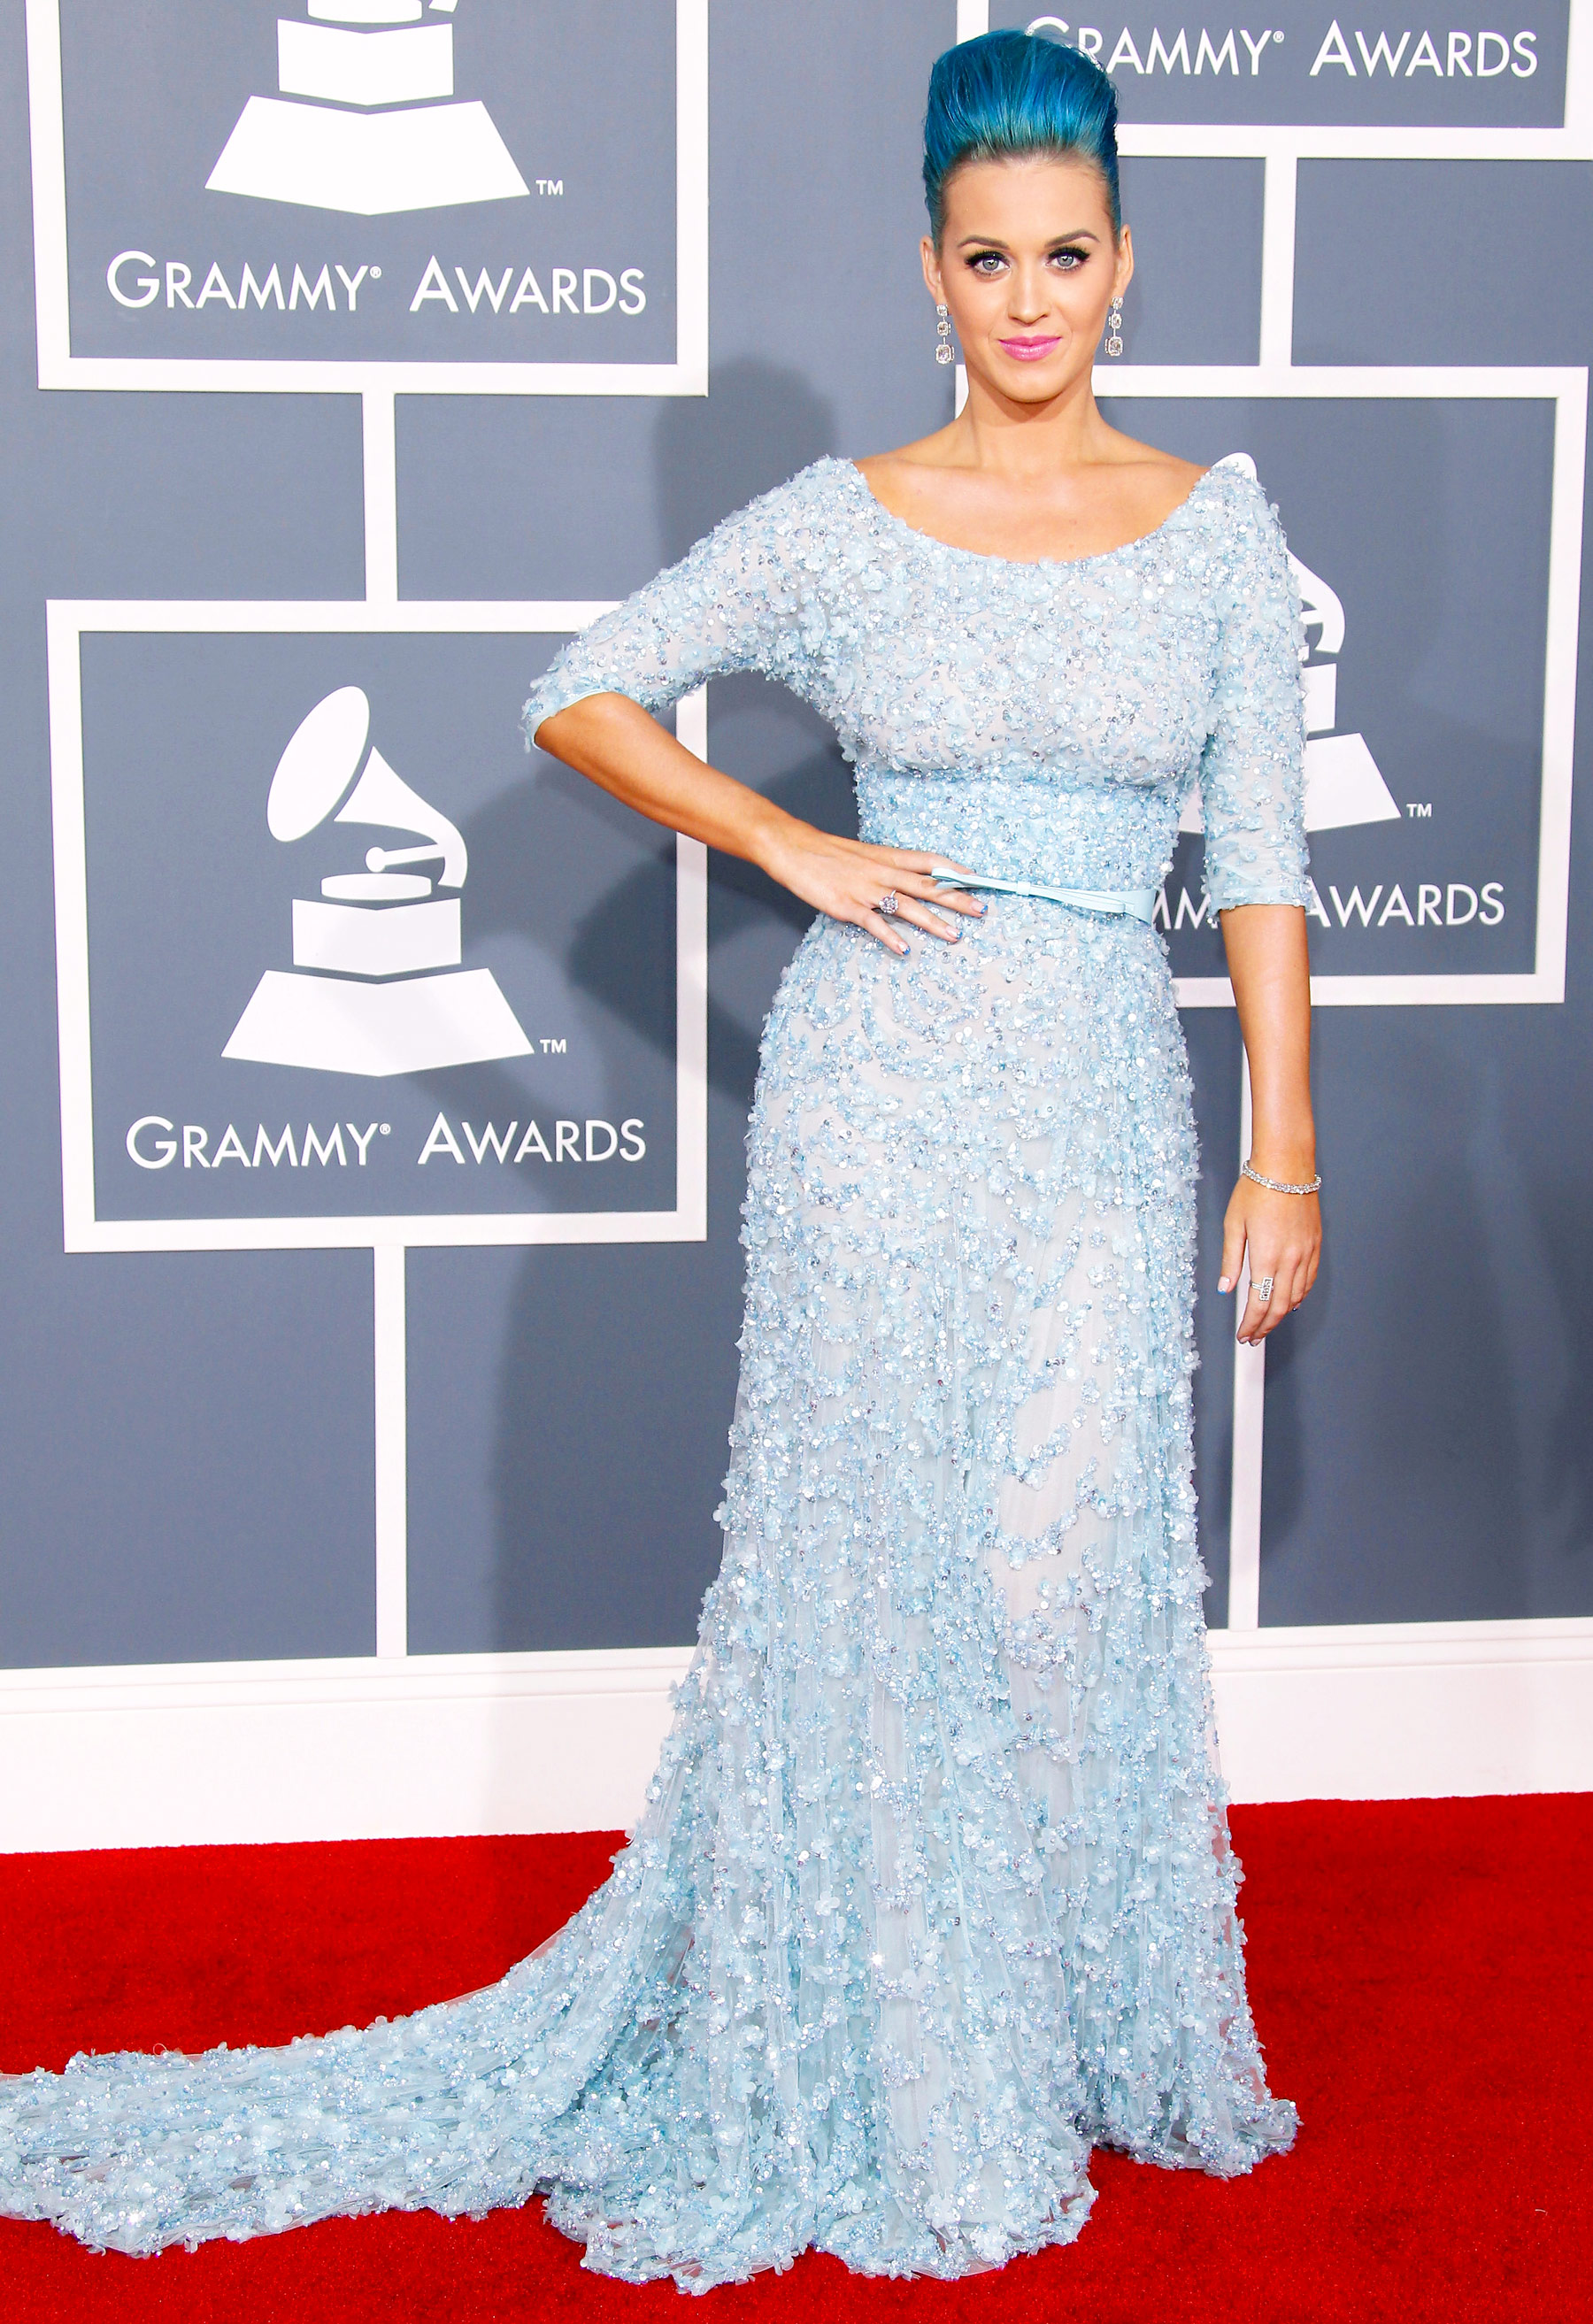 In a matchy-matchy blue Elie Saab gown and blue bouffant at the Grammys.